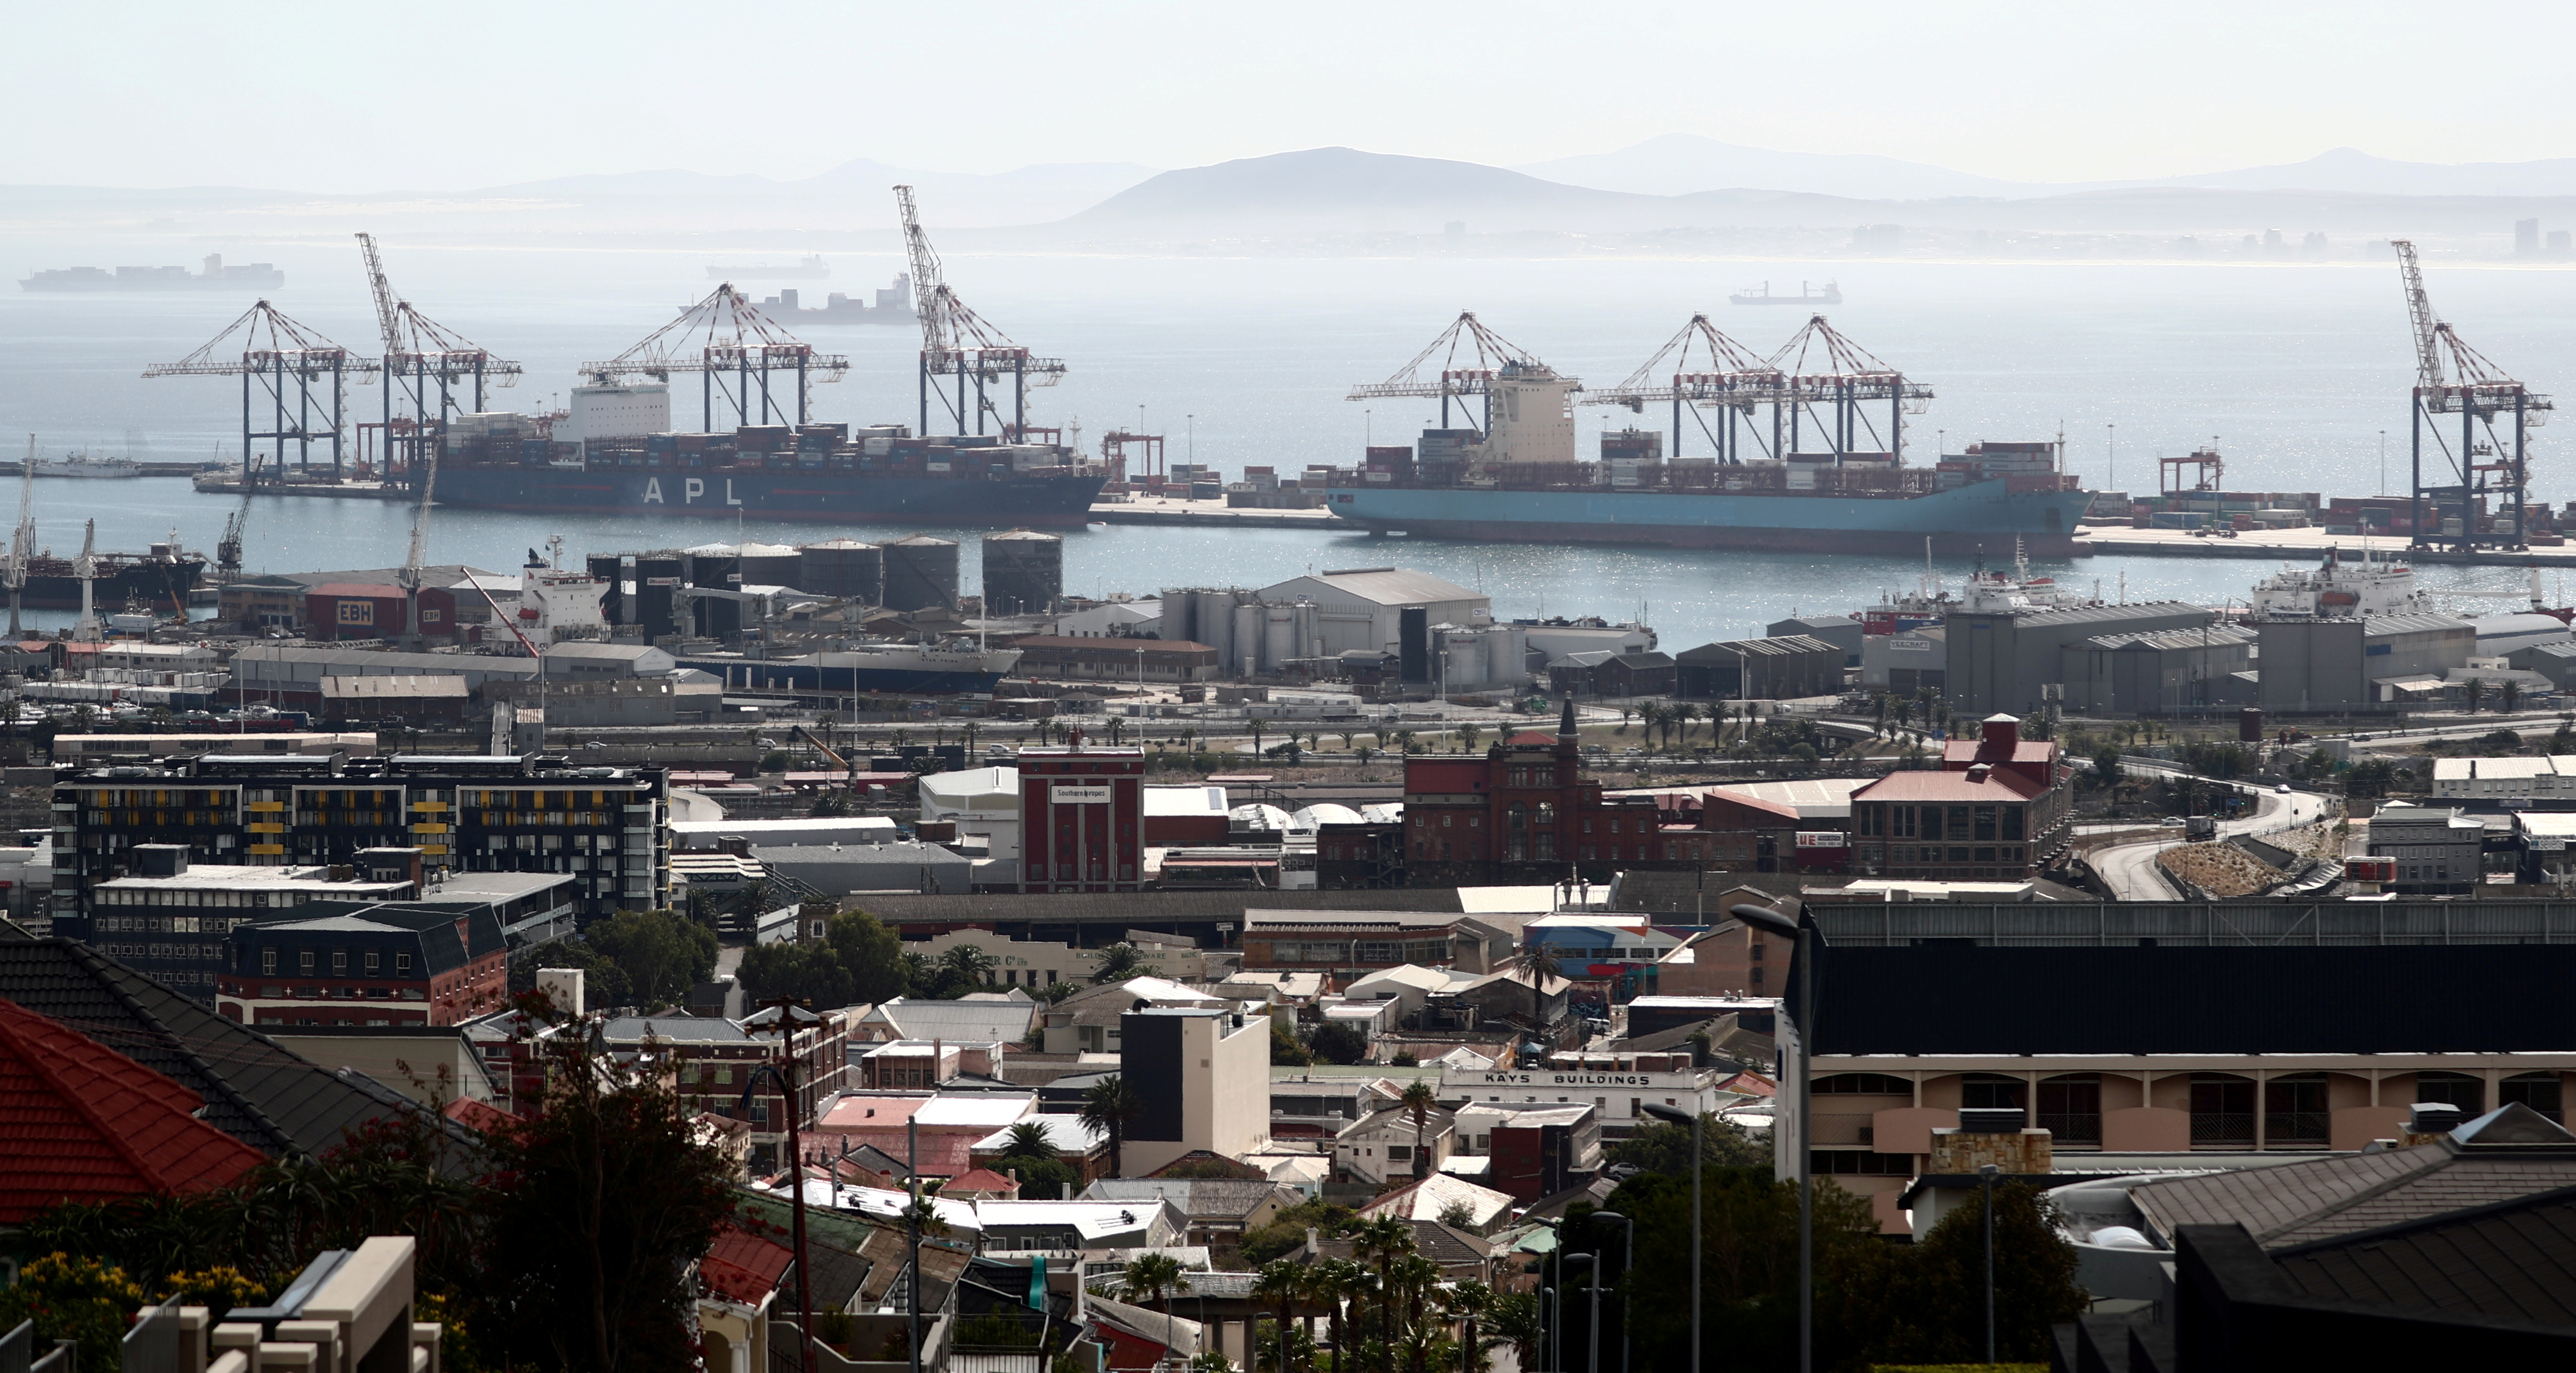 Container ships wait to load and offload goods in port during a 21-day nationwide lockdown aimed at limiting the spread of coronavirus disease (COVID-19) in  Cape Town, South Africa, April 17, 2020. REUTERS/Mike Hutchings/File Photo